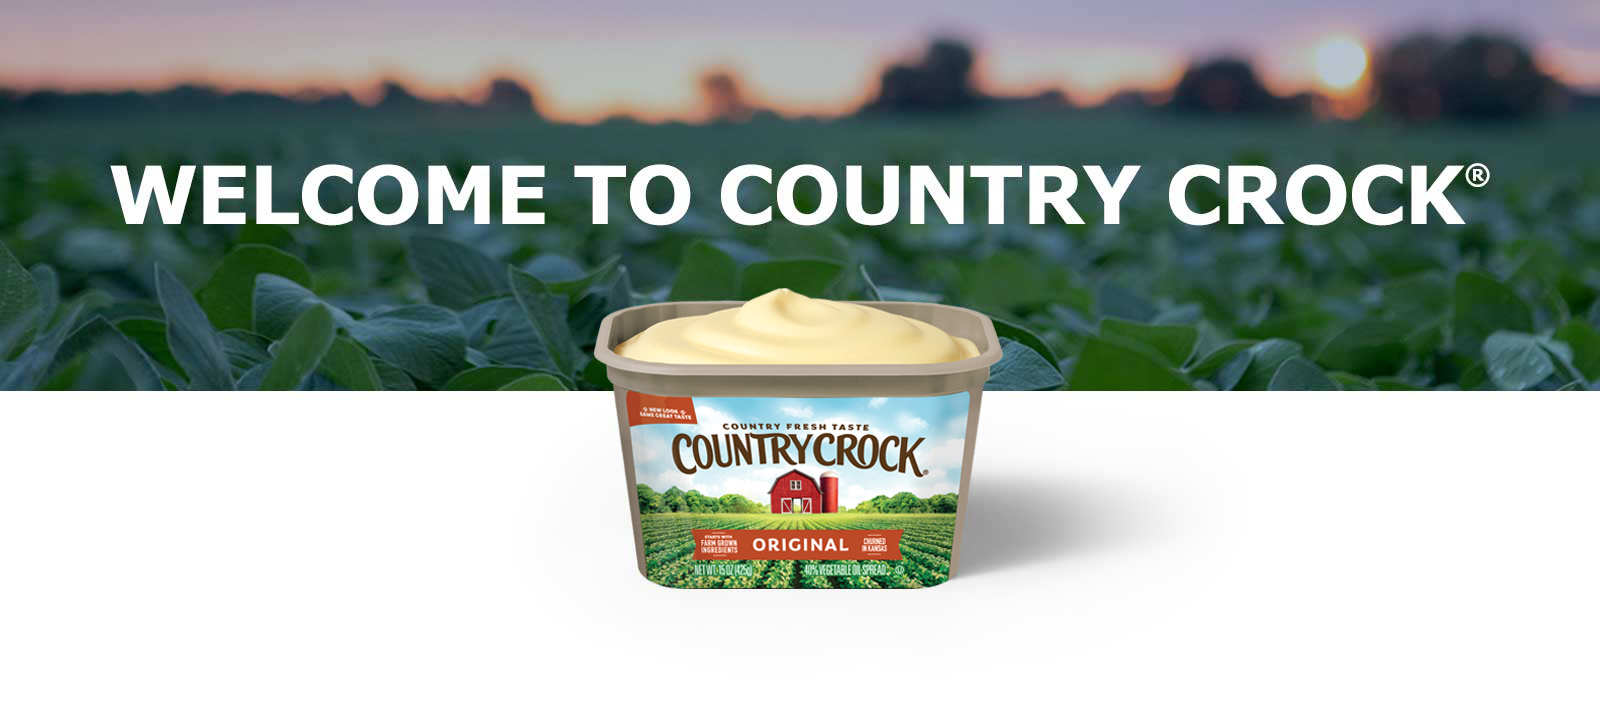 Welcome to Country Crock